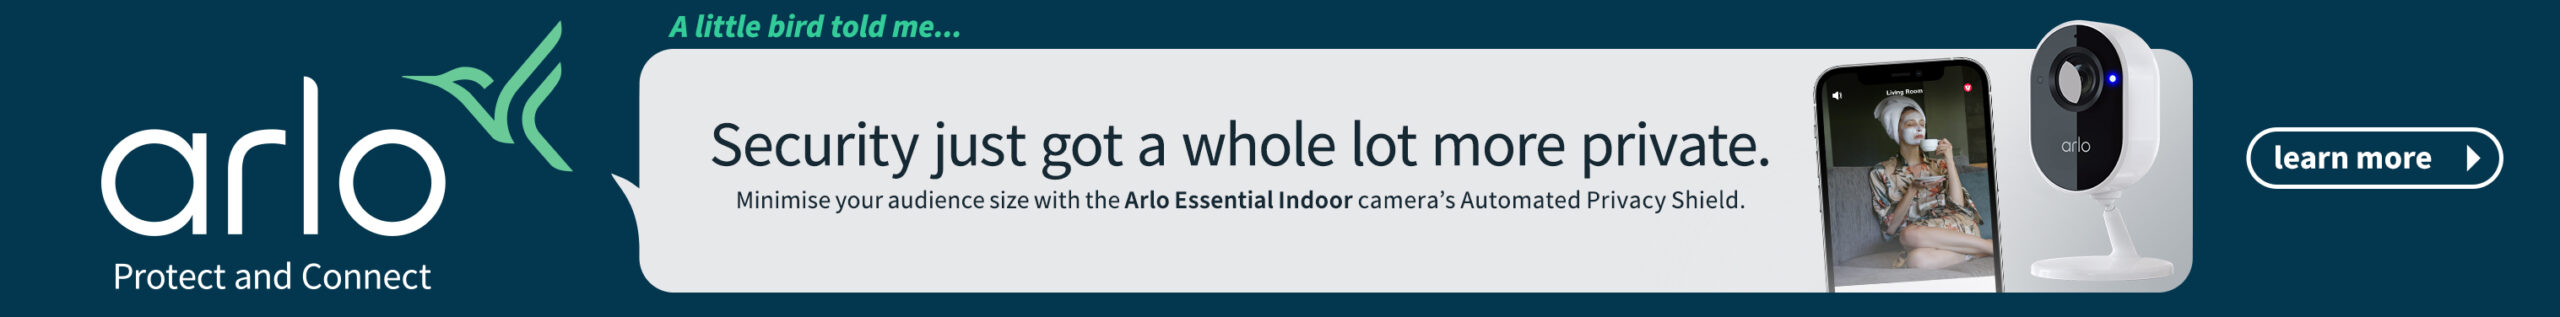 ARL0355 Arlo ESS Indoor Generic Banner 728x90 V4 scaled Poor Mapping, Scratches Out Of The Box, iPhone 5 A Shocker